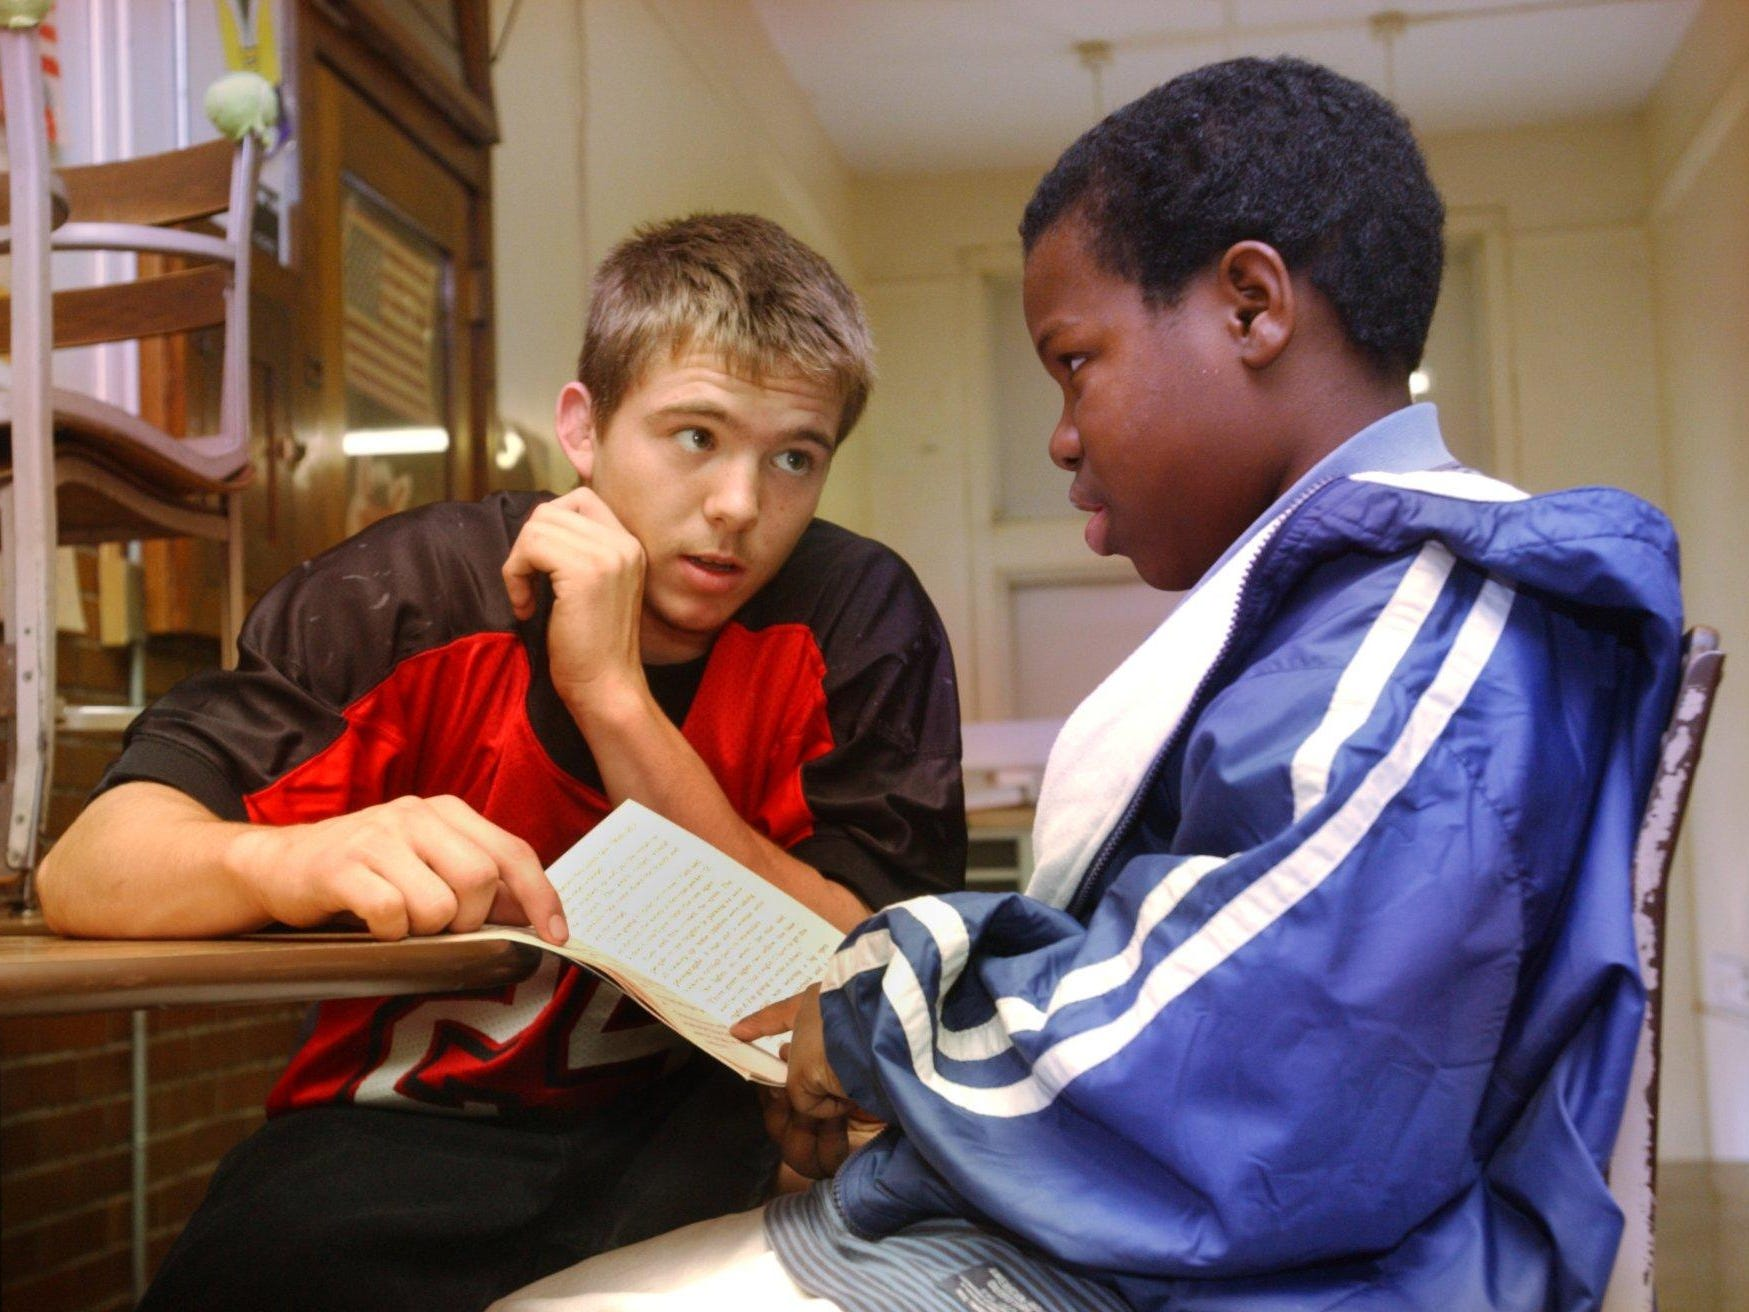 Central High School senior, Daniel Bergen, helps fourth-grader Dennis Cooper with his reading at Boyd Elementary as part of the Comer Project Philosophy program.